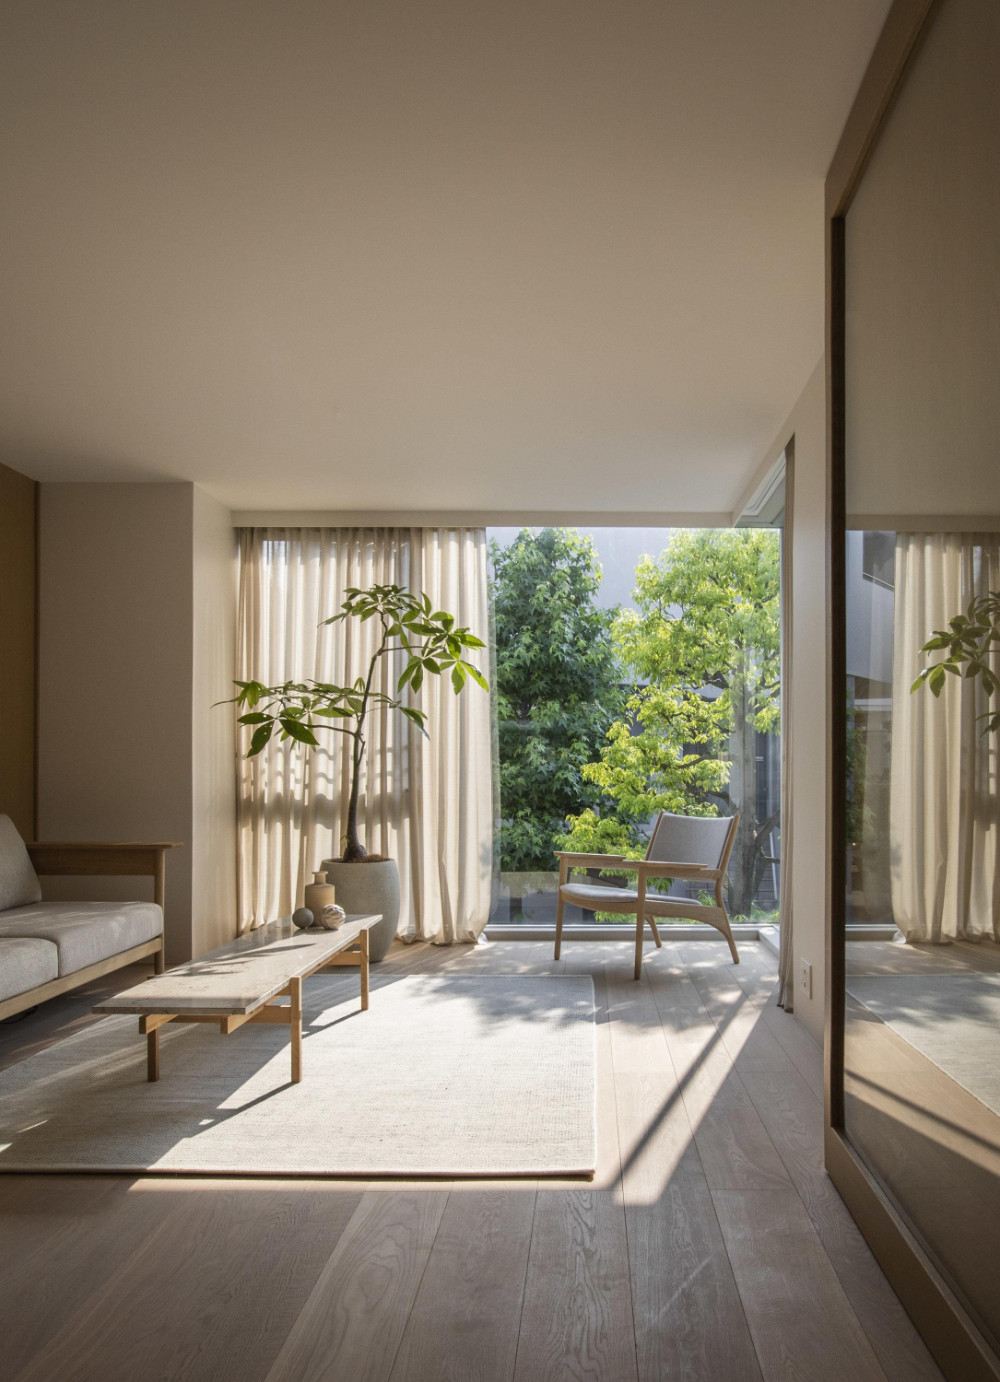 Norm Architects And Keiji Ashizawa Design Two Elegant And Minimal Apartments In Tokyo - IGNANT